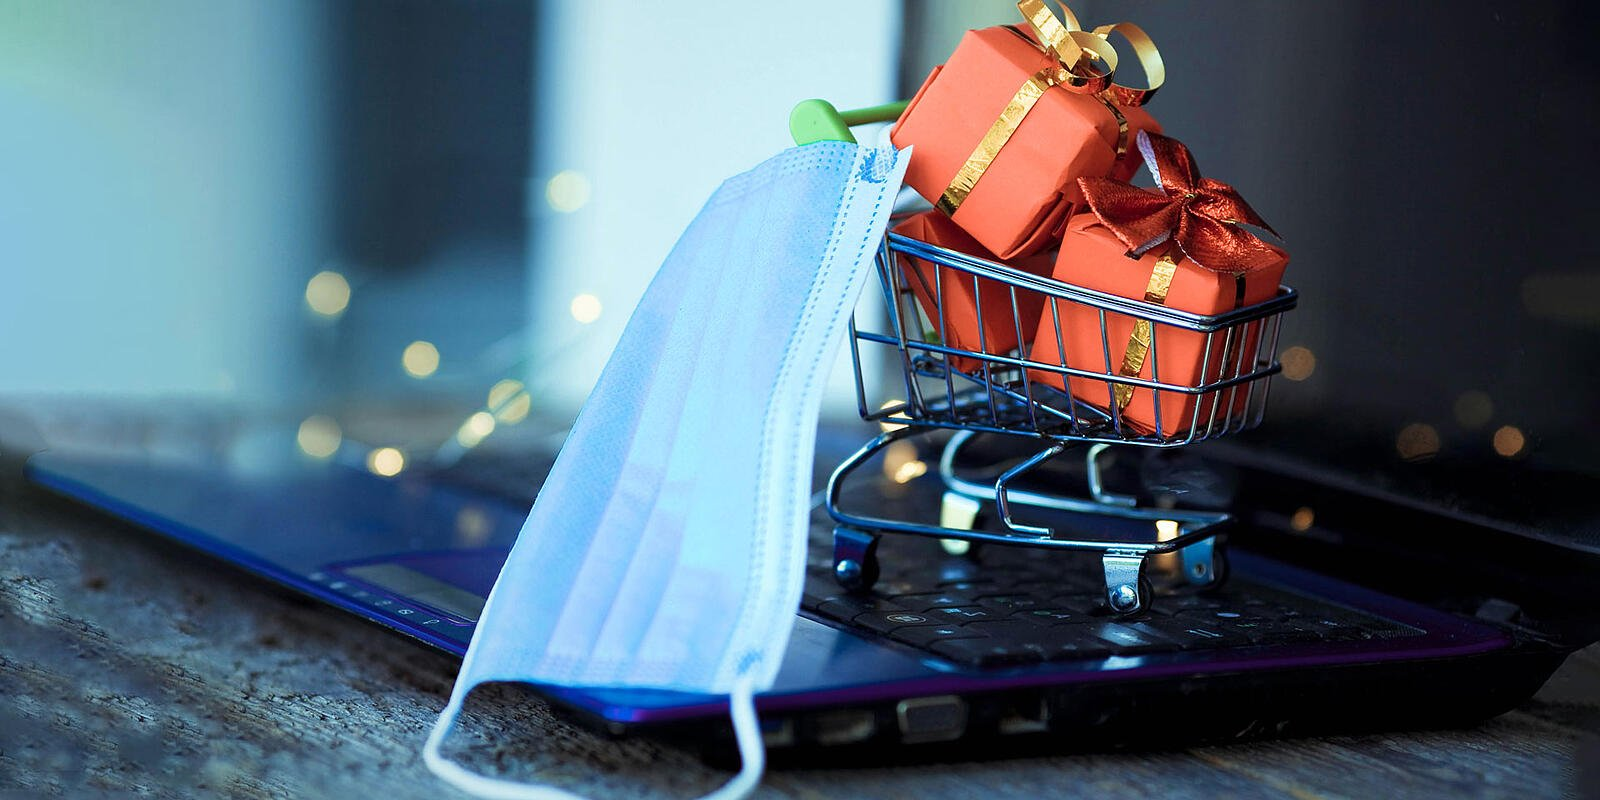 How retailers can prepare for a digital holiday shopping season